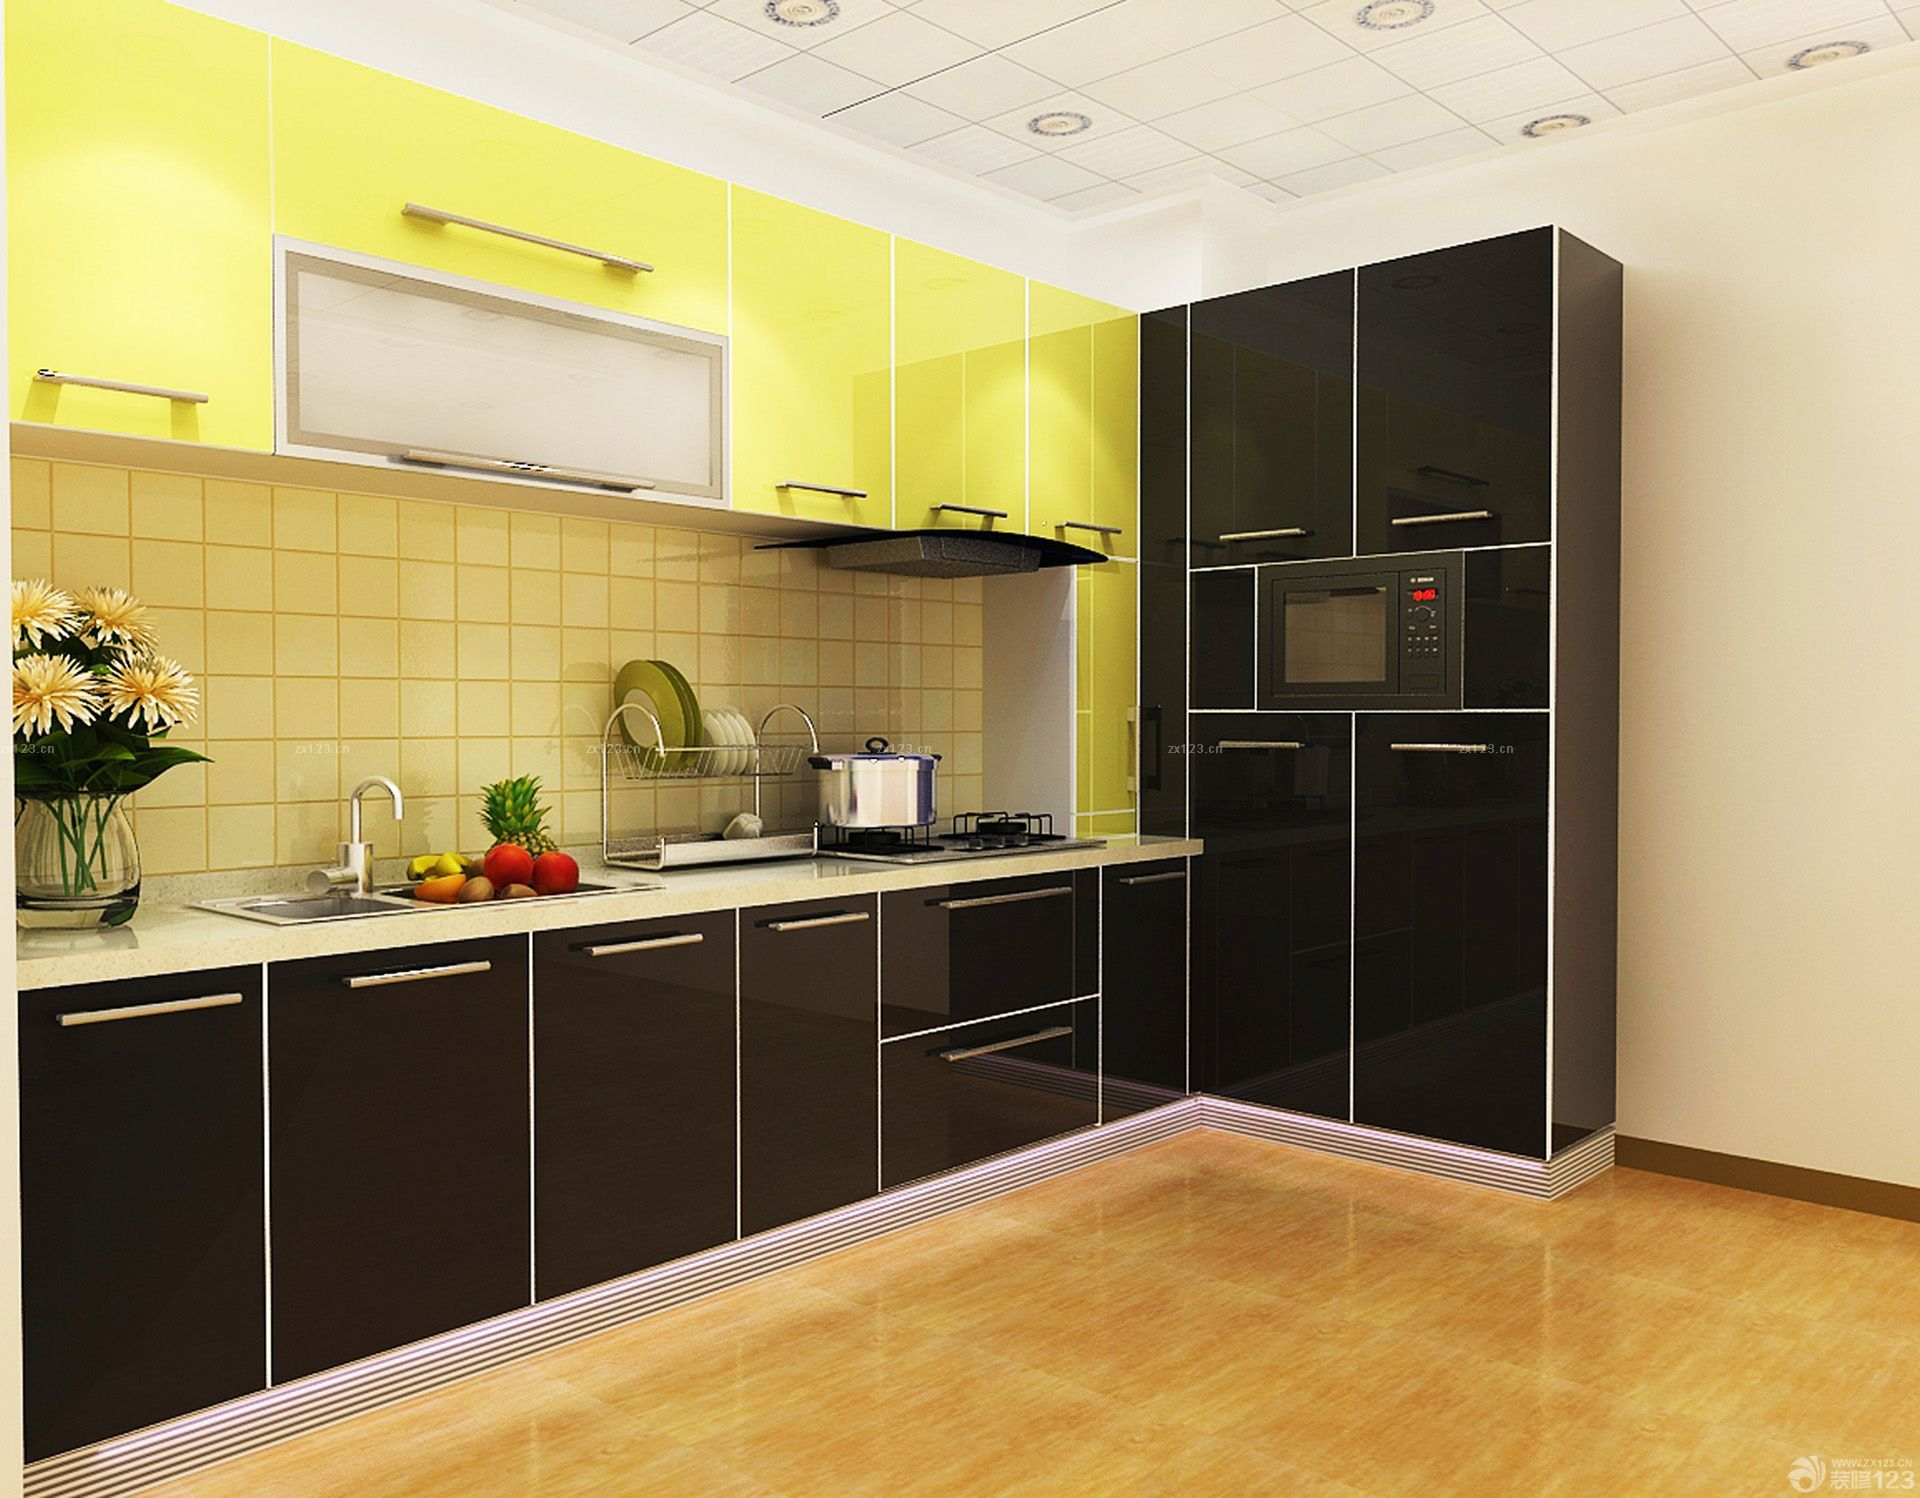 Black High Gloss Kitchen Cabinets Simple Designs Pantry Cupboards Buy Kitchen Pantry Cupboards Kitchen Cabinet Simple Designs High Gloss Kitchen